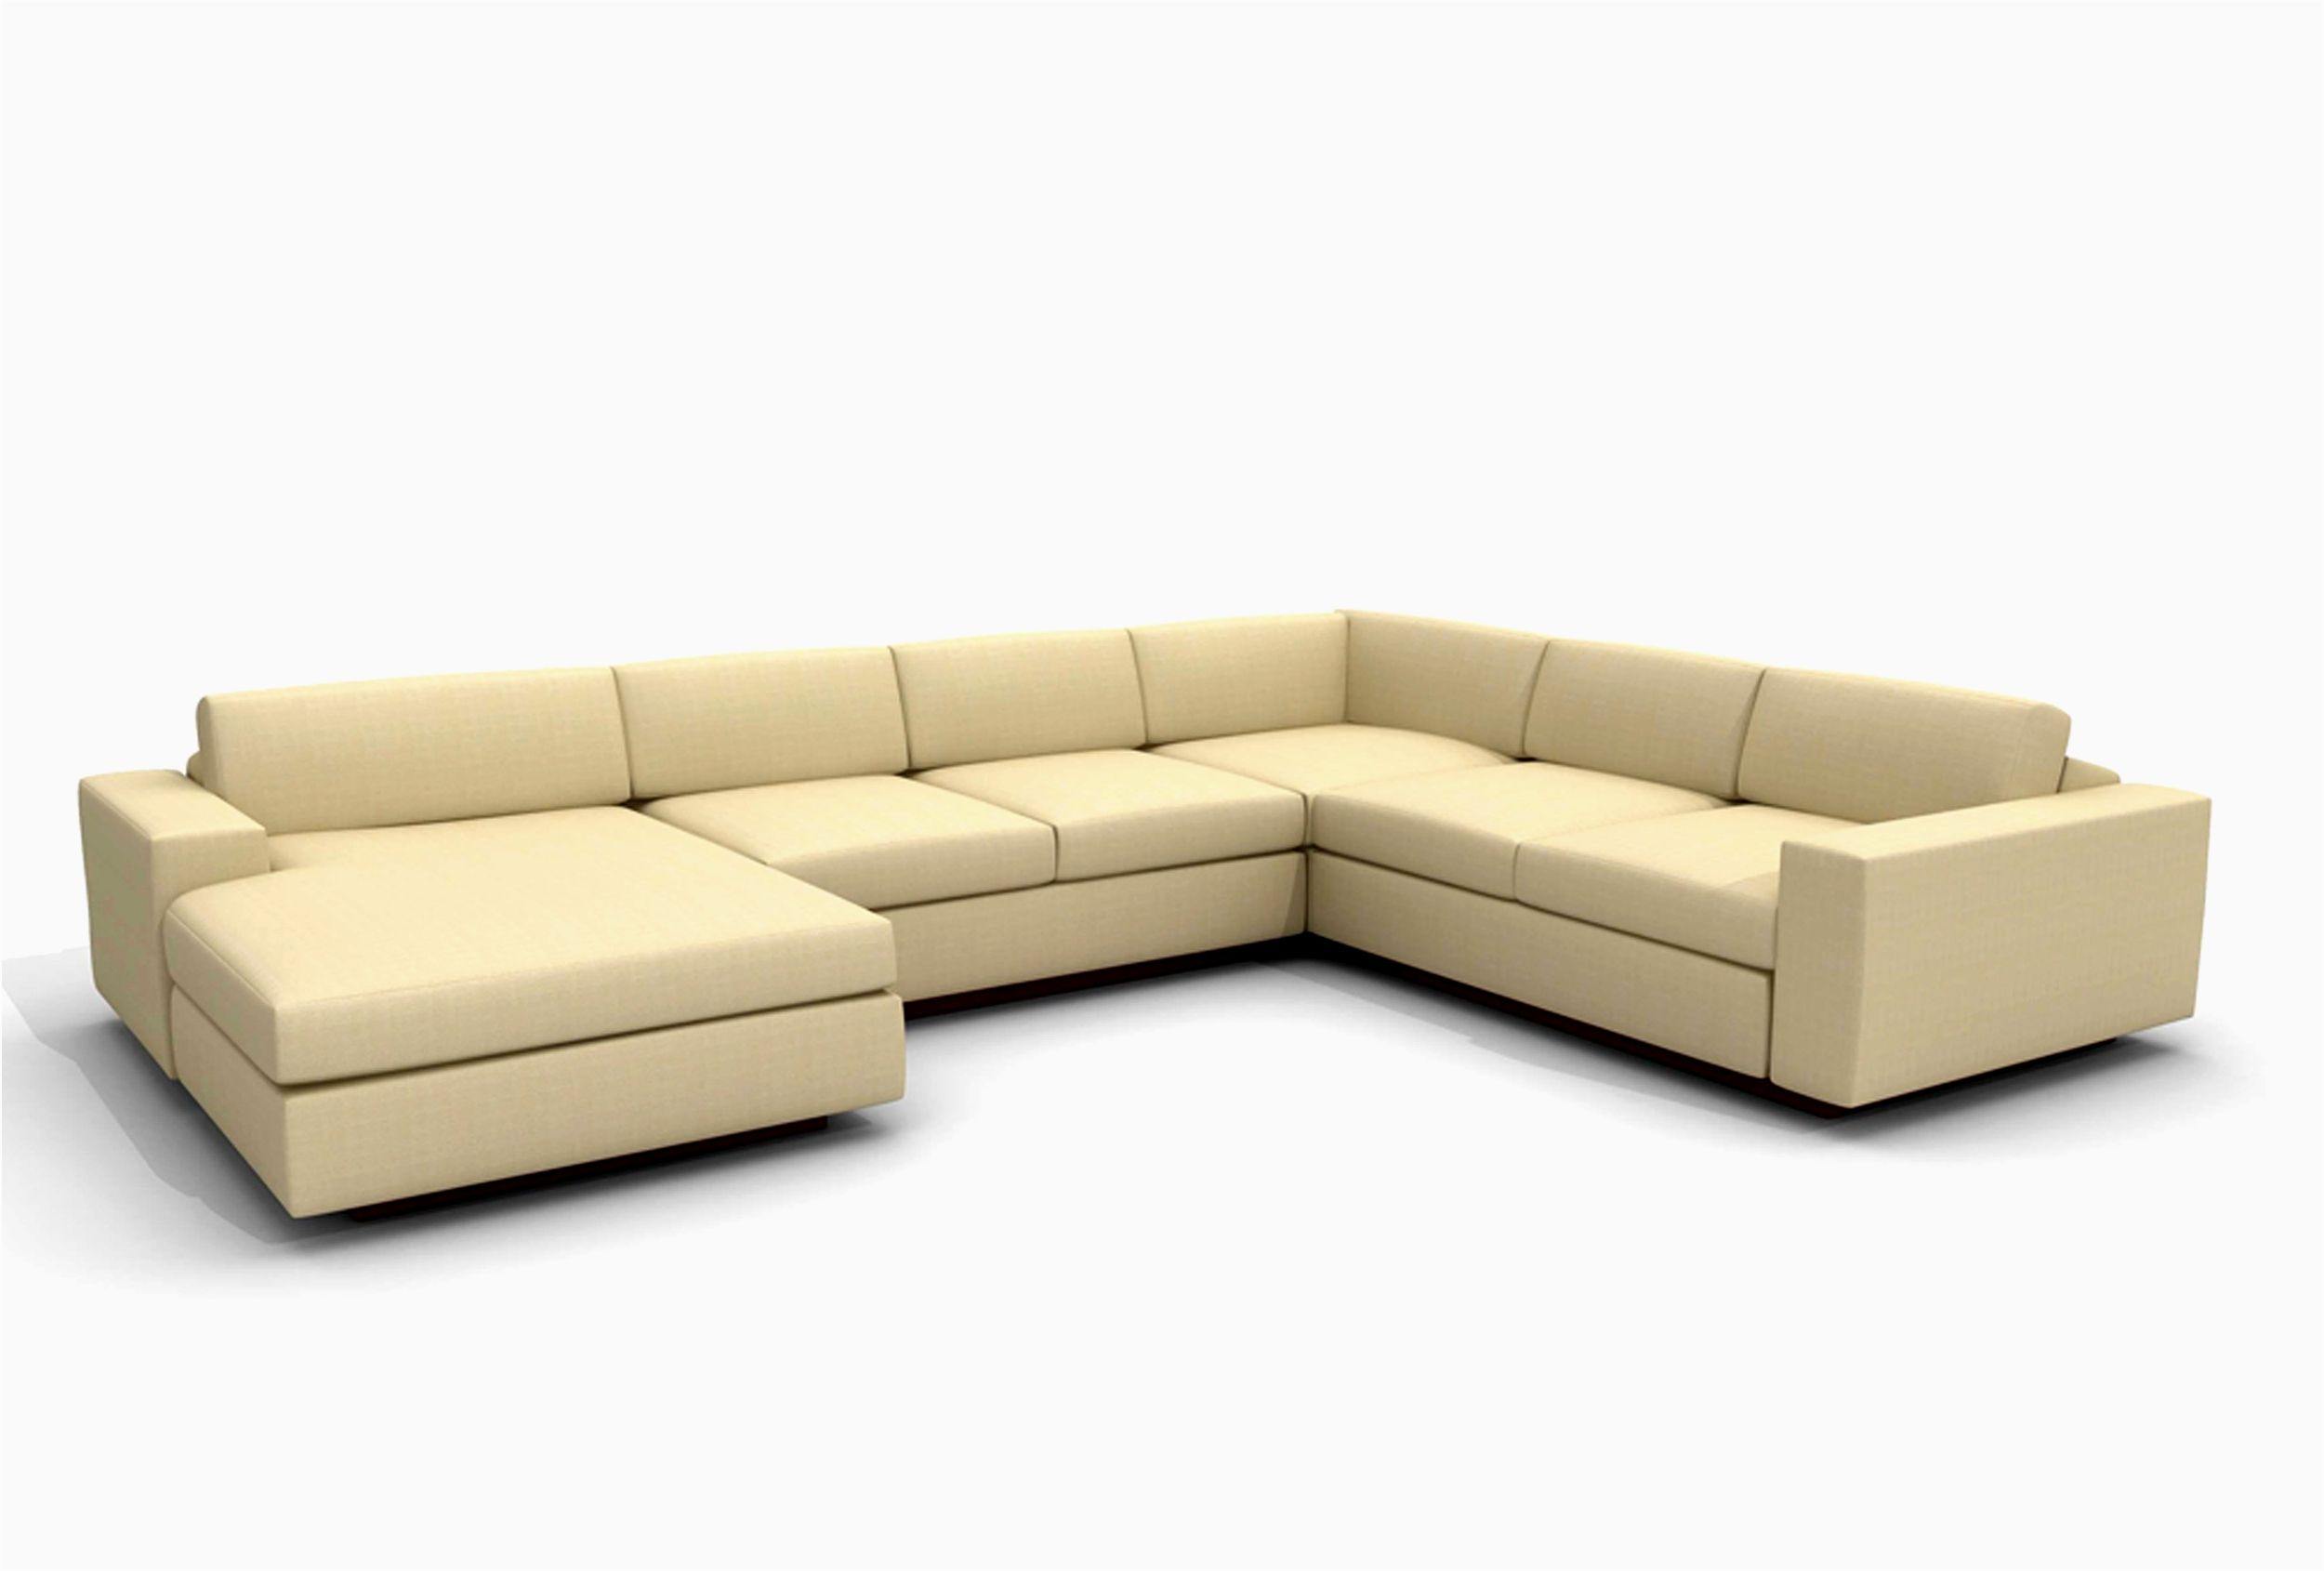 awesome leather white sofa photograph-Elegant Leather White sofa Collection